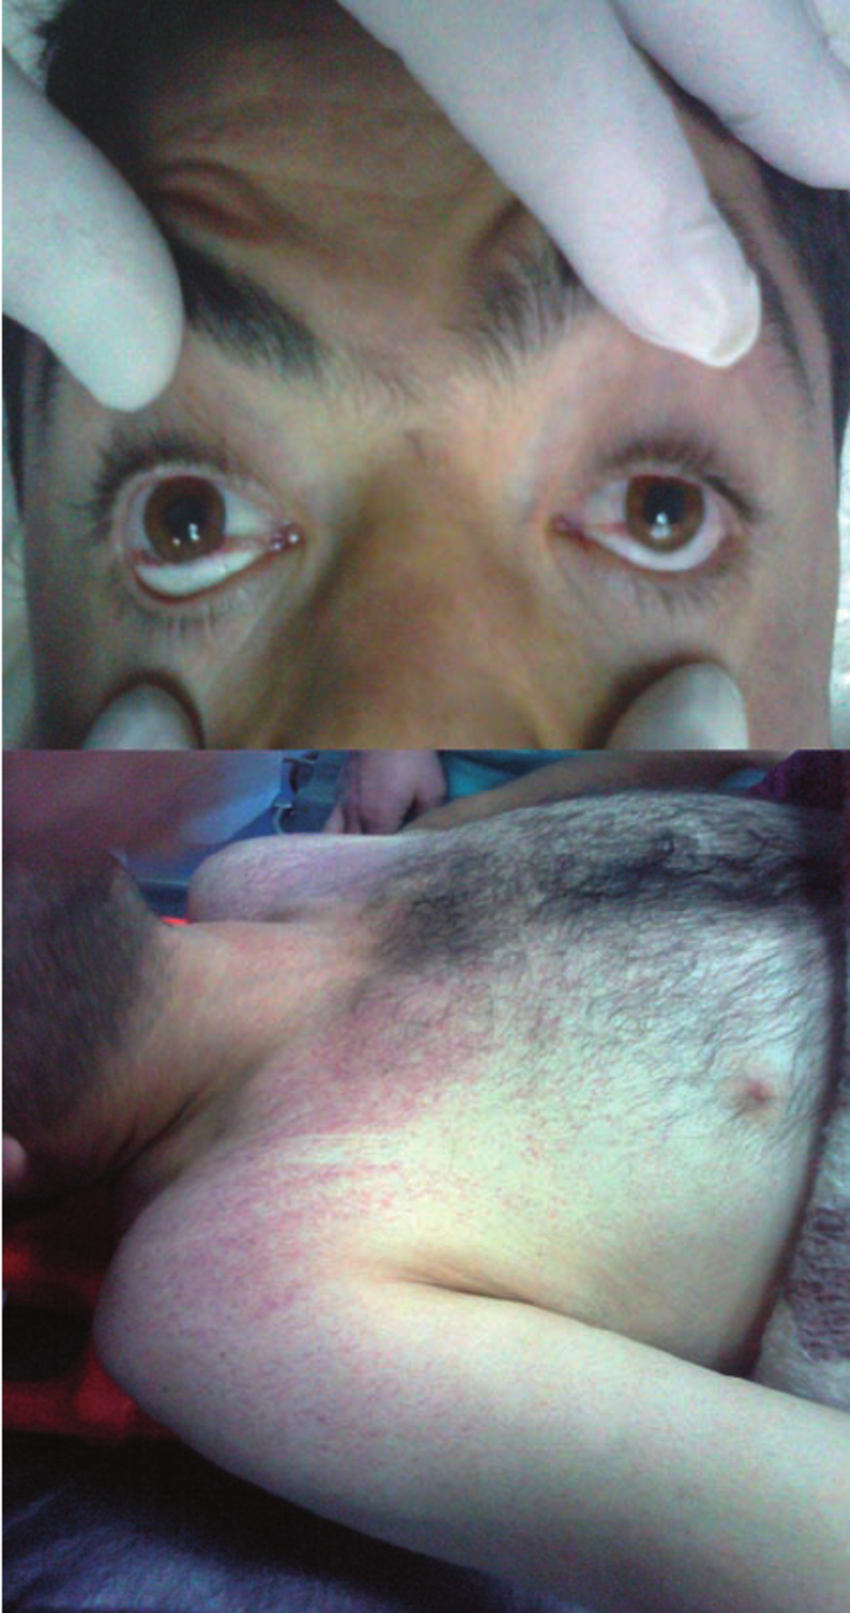 Petechial haemorrhages on conjunctivas and chest.